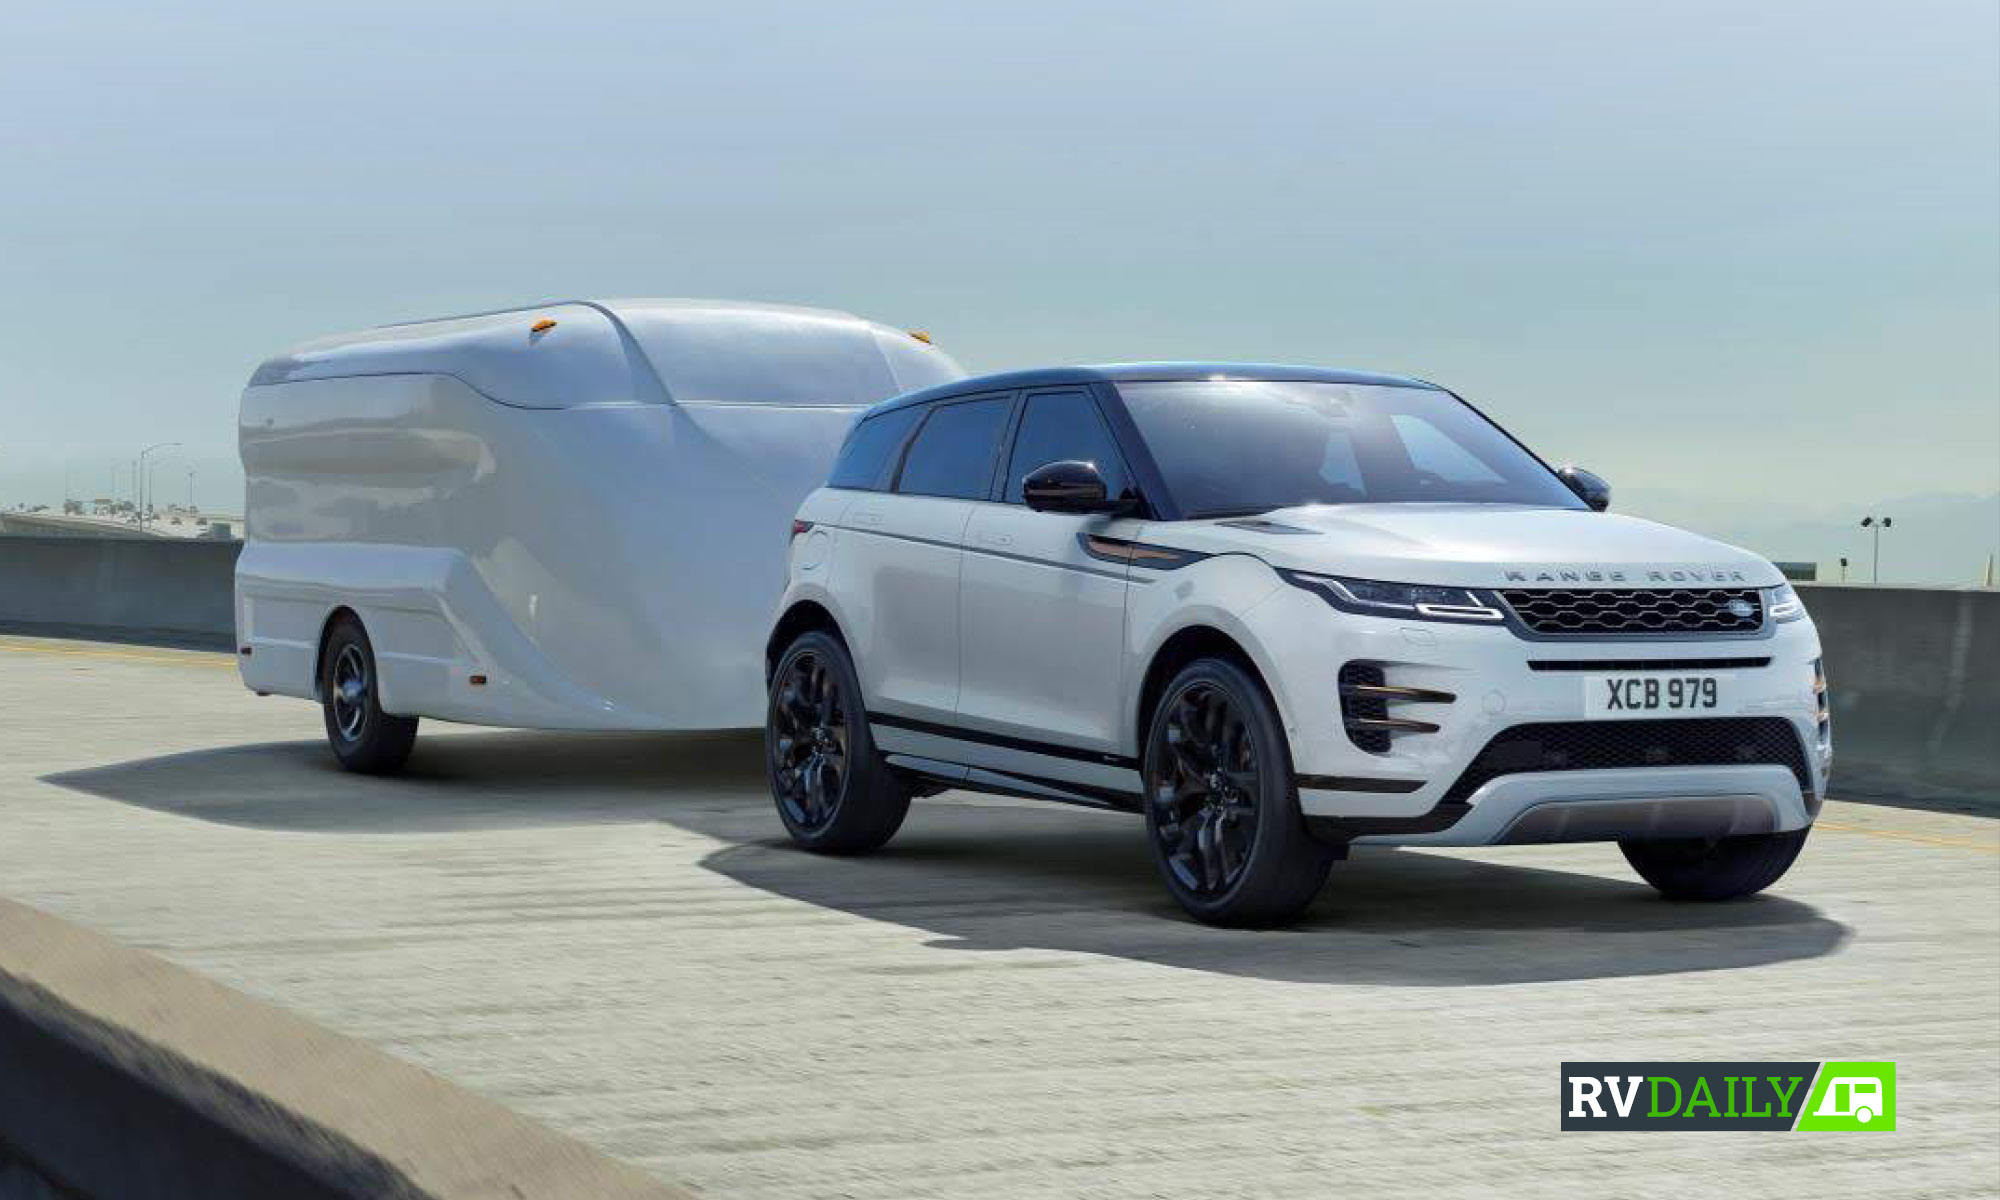 The new Range Rover Evoque will show us the future, now